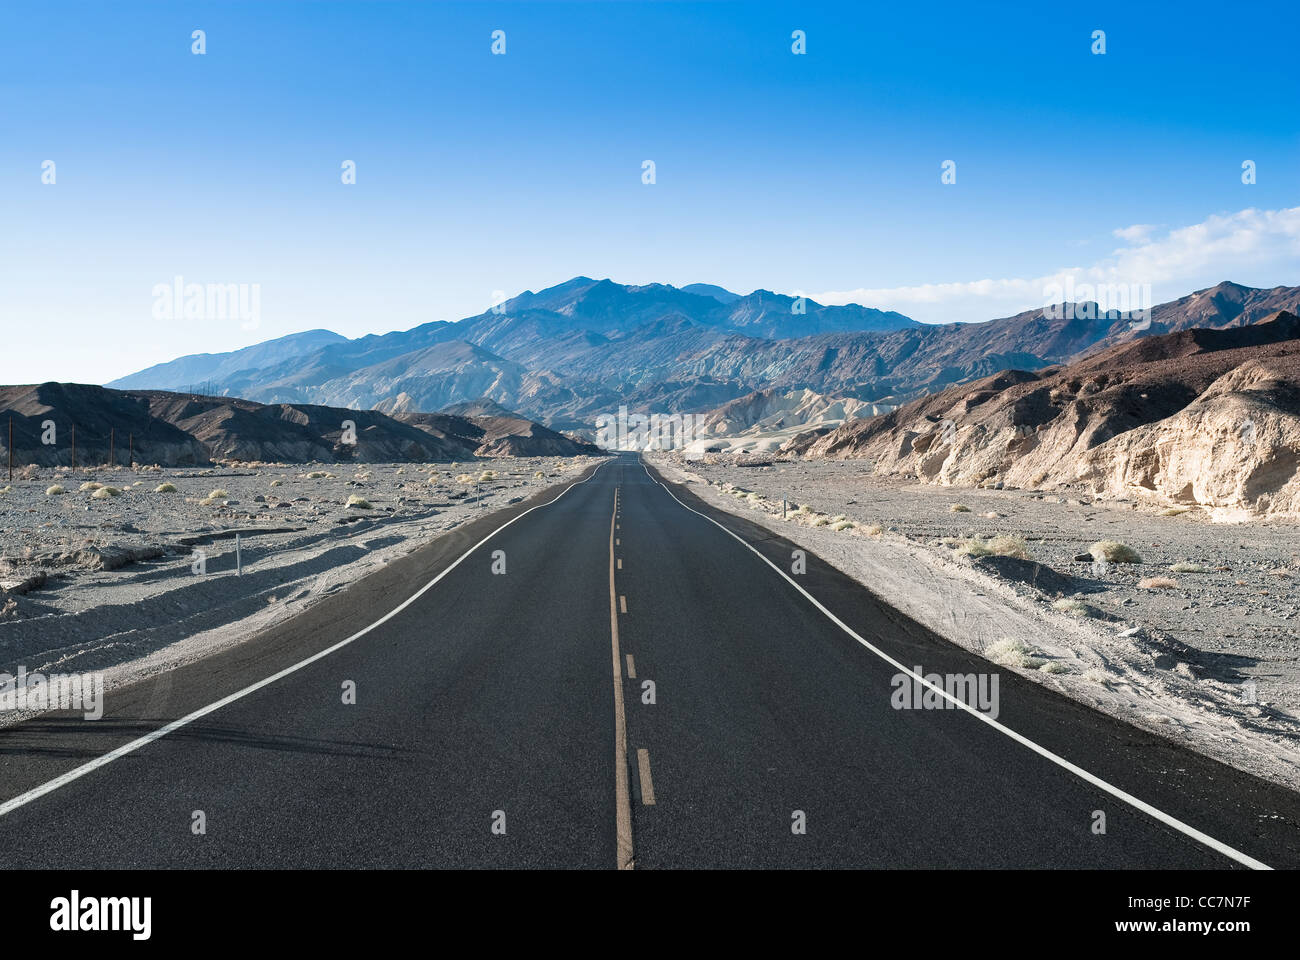 highway in death valley national park, nevada, usa - Stock Image